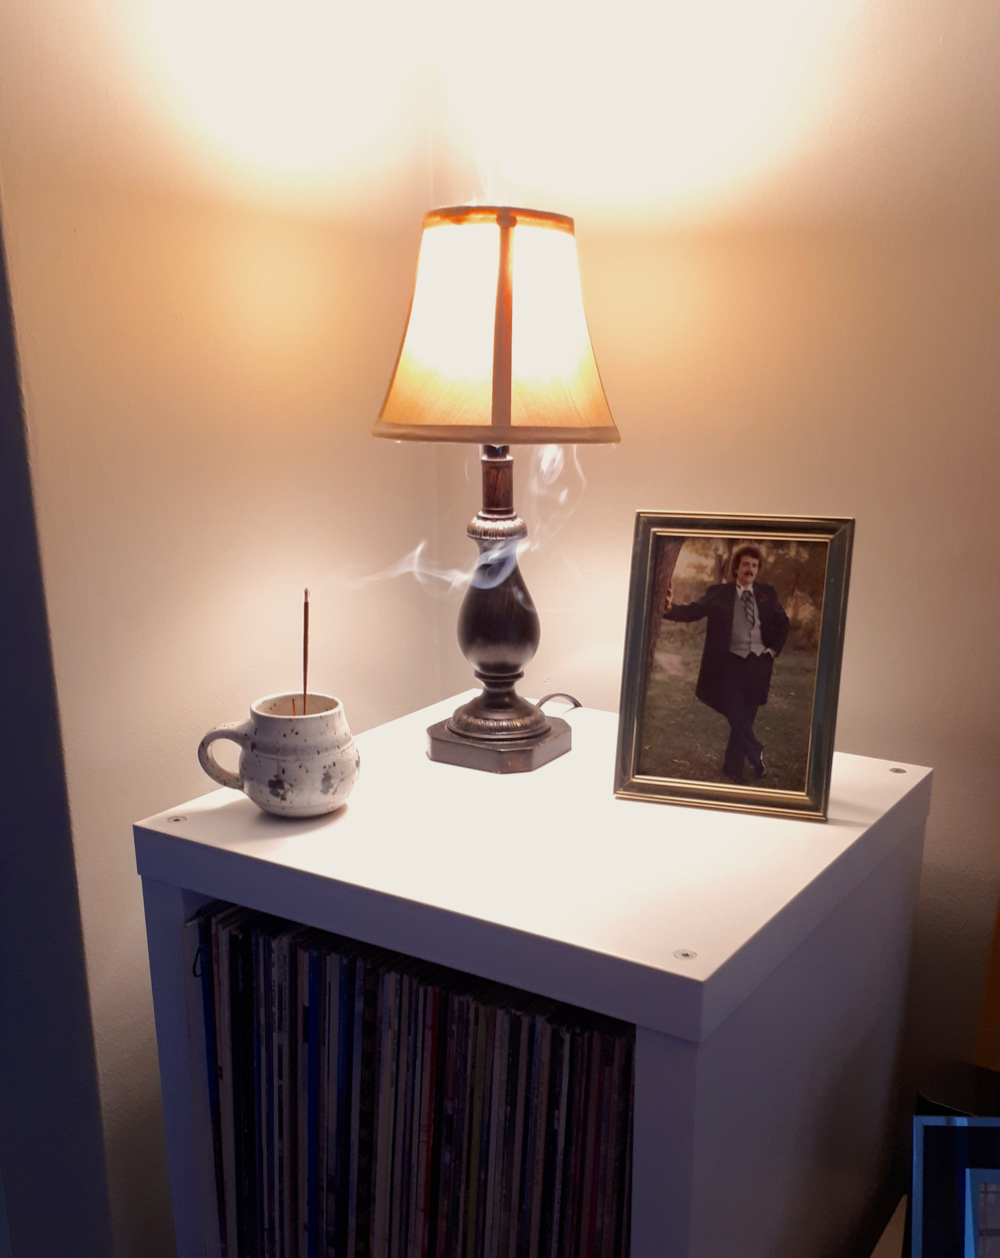 Our small lamp on top of the records shelf helps reflect light against the ceiling, creating a glow in the room. The use of a yellow-tinted shade helps diffuse warmer light into the room. And lights up a super cool picture of my Dad during his wedding day in the 80's! That perm!